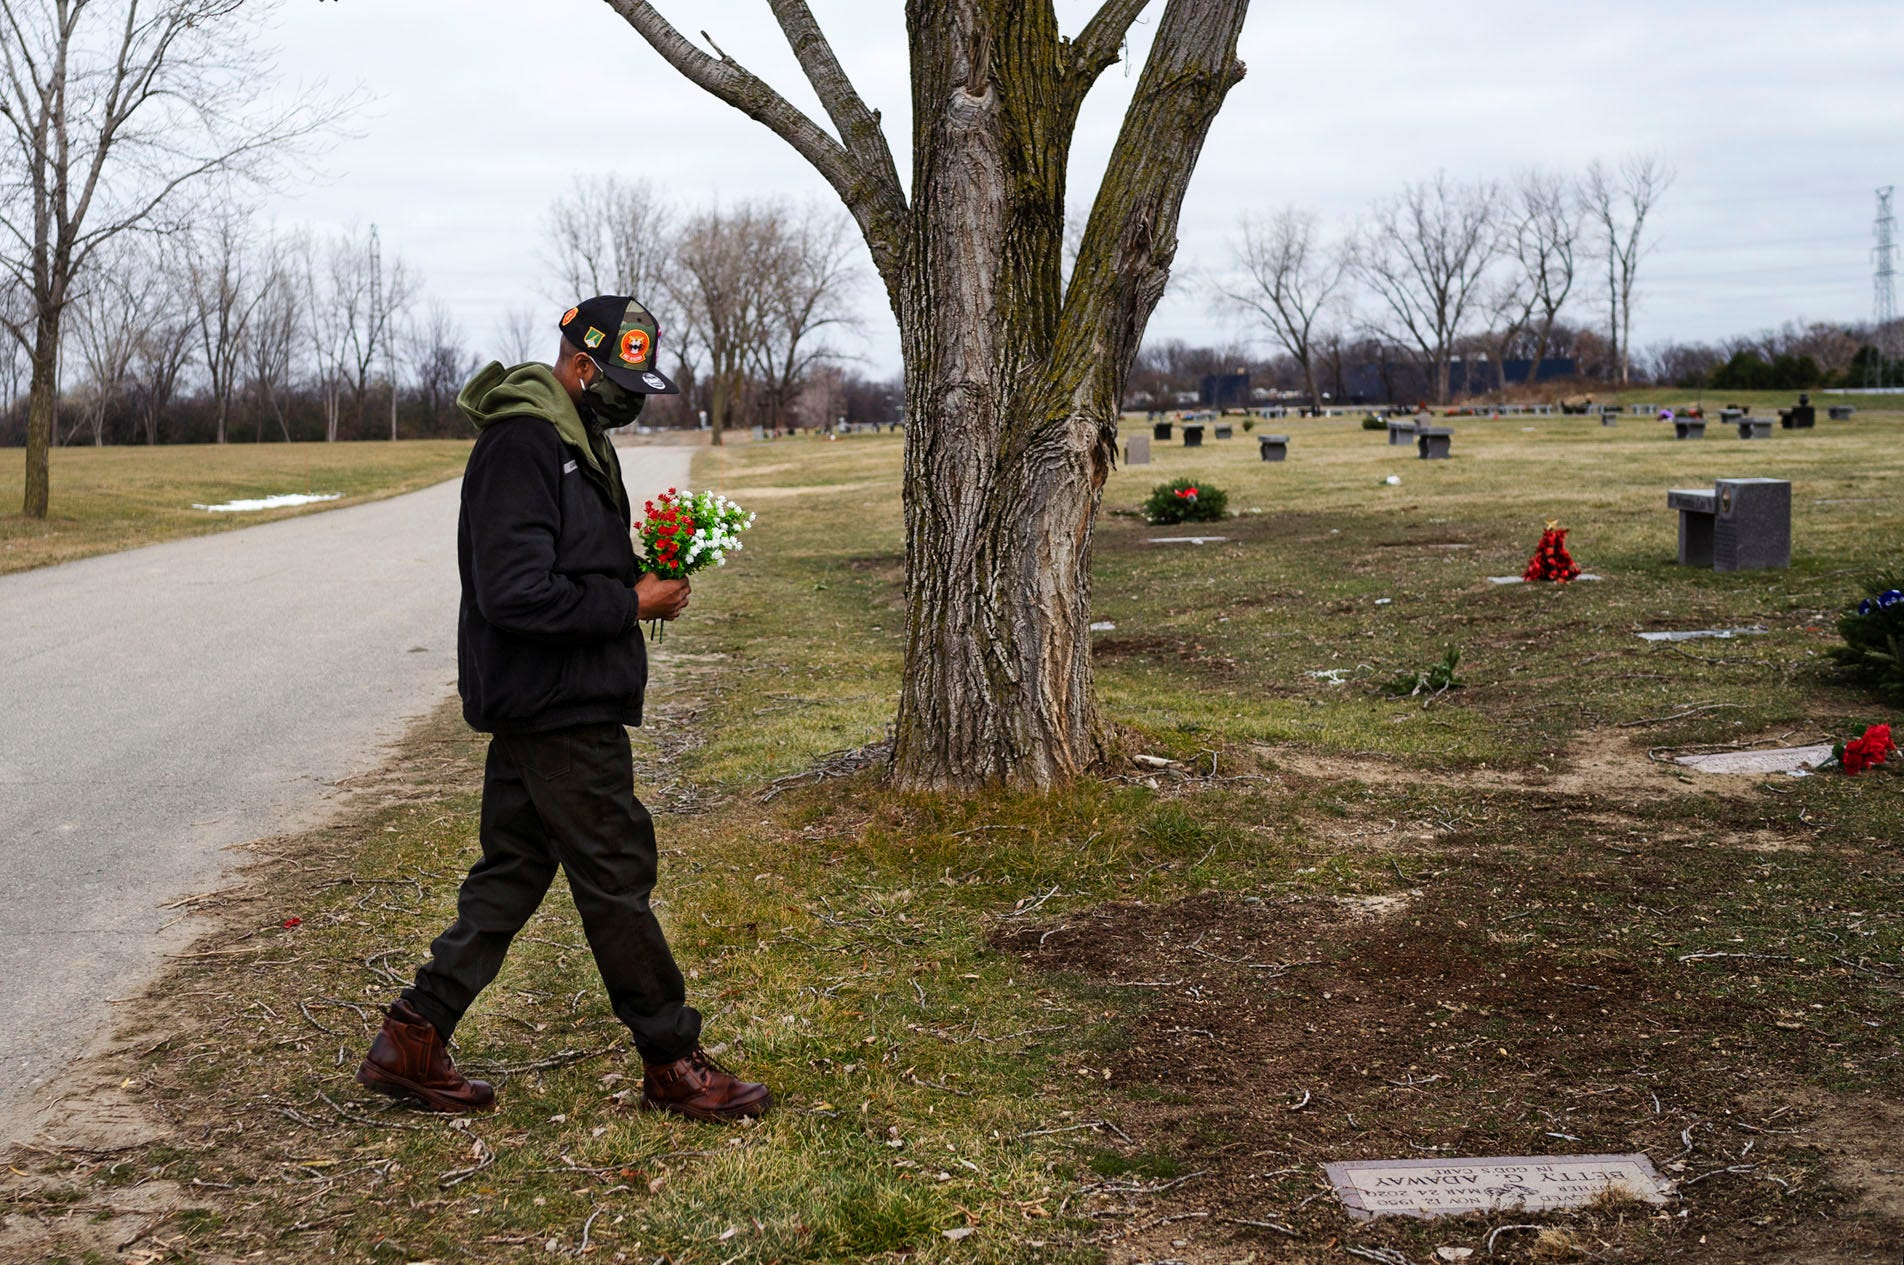 David Adaway places flowers on his mother's grave at the Detroit Memorial Park on Sunday, Dec. 6, 2020, in Redford Township.